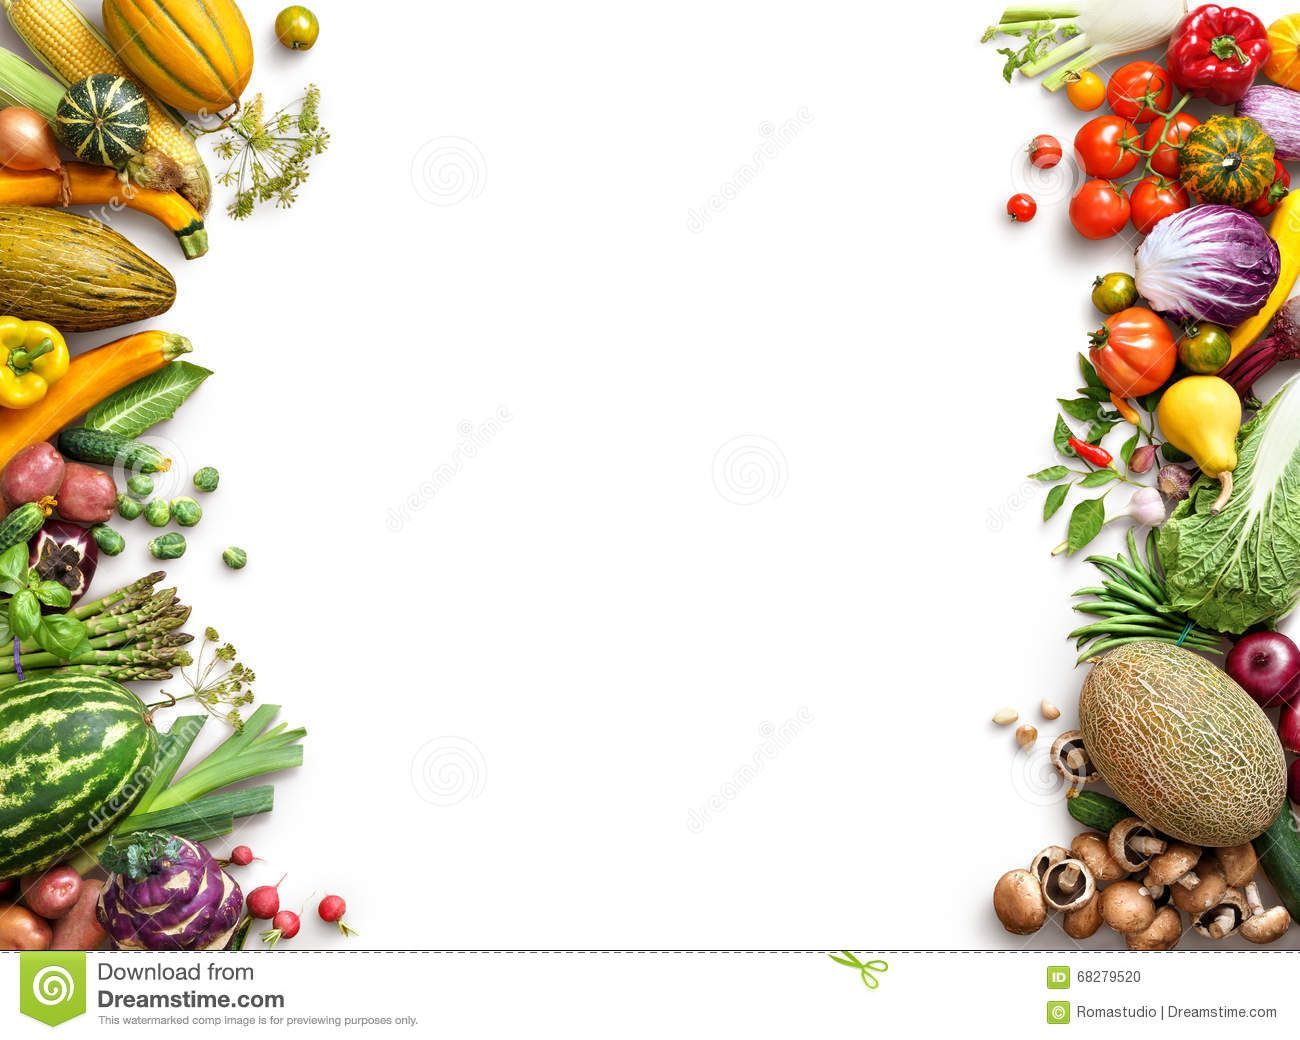 High Resolution Healthy Food Different Fruits And Vegetables Different Fruits Food Photography